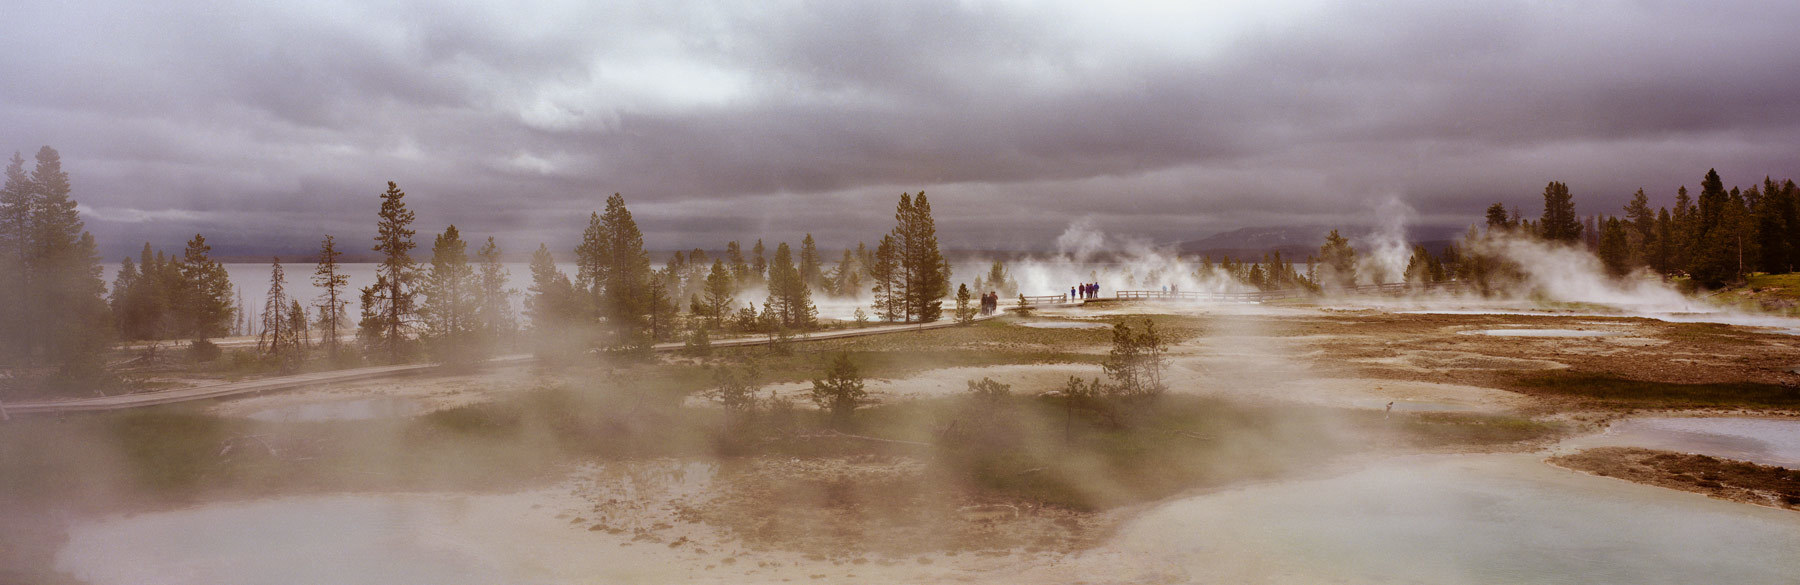 Lightbox_jorstad_yellowstone_ine78h